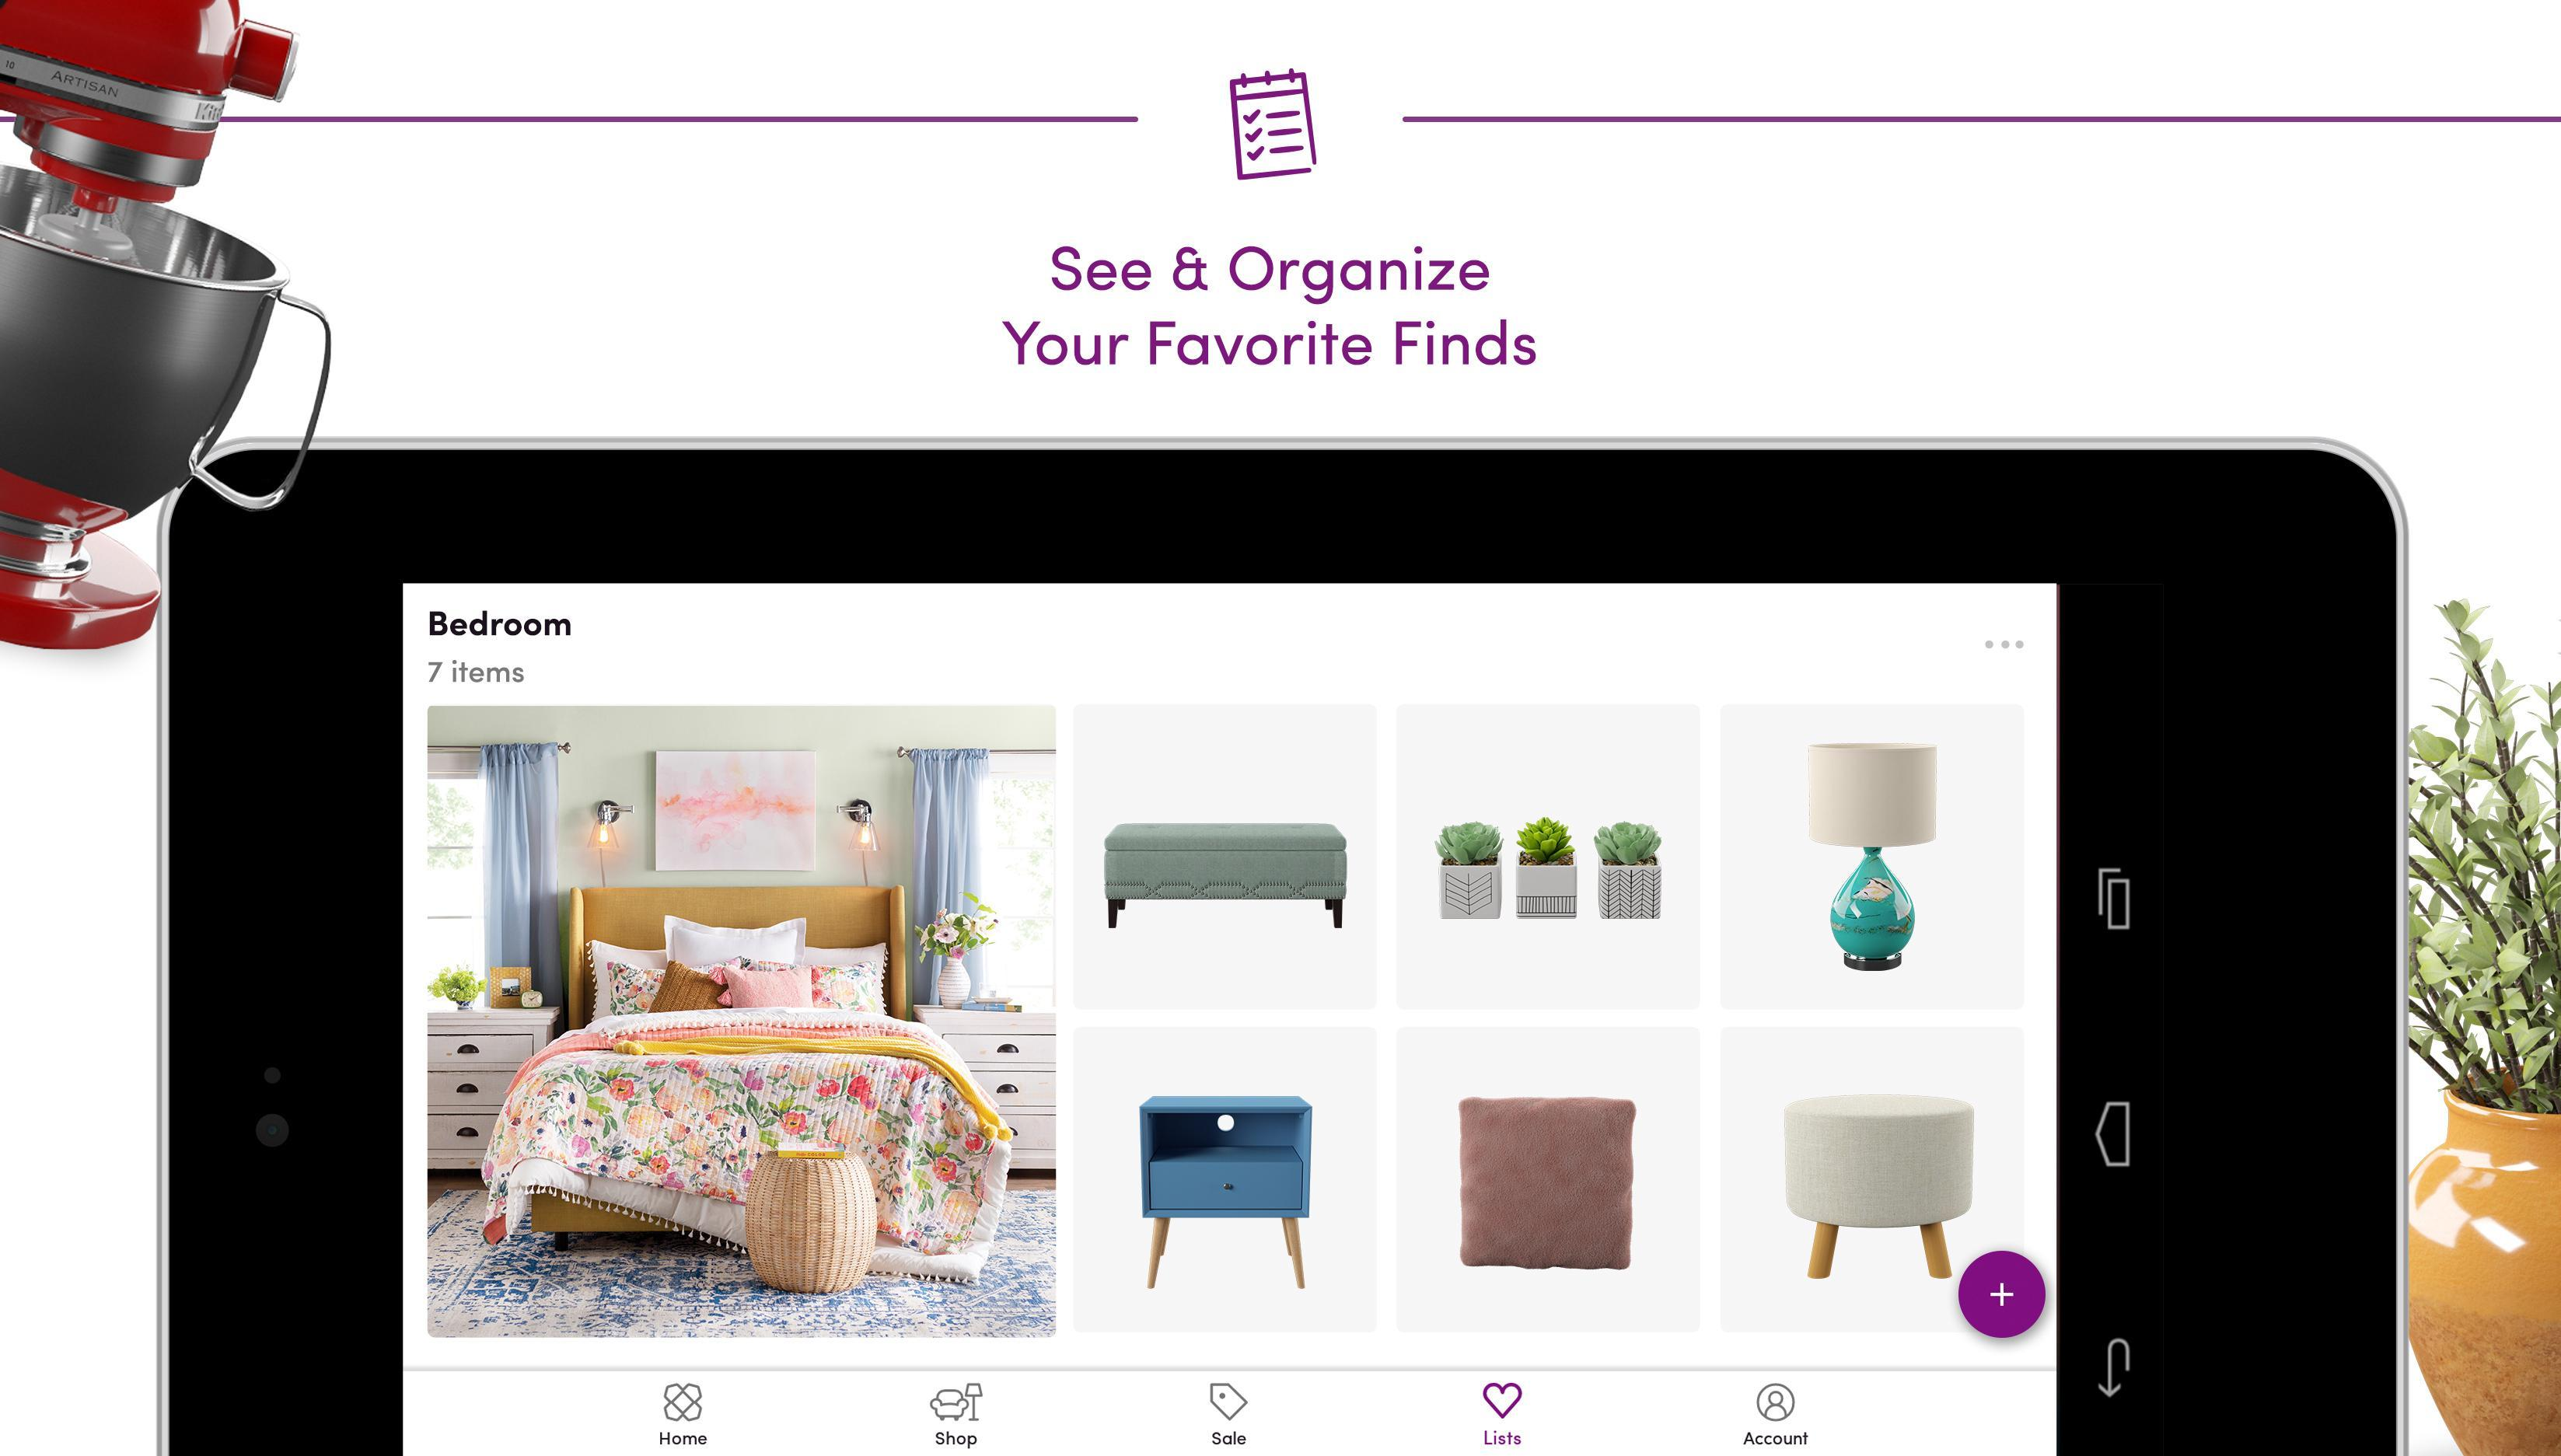 Wayfair Shop All Things Home 5.2.4 Screenshot 13